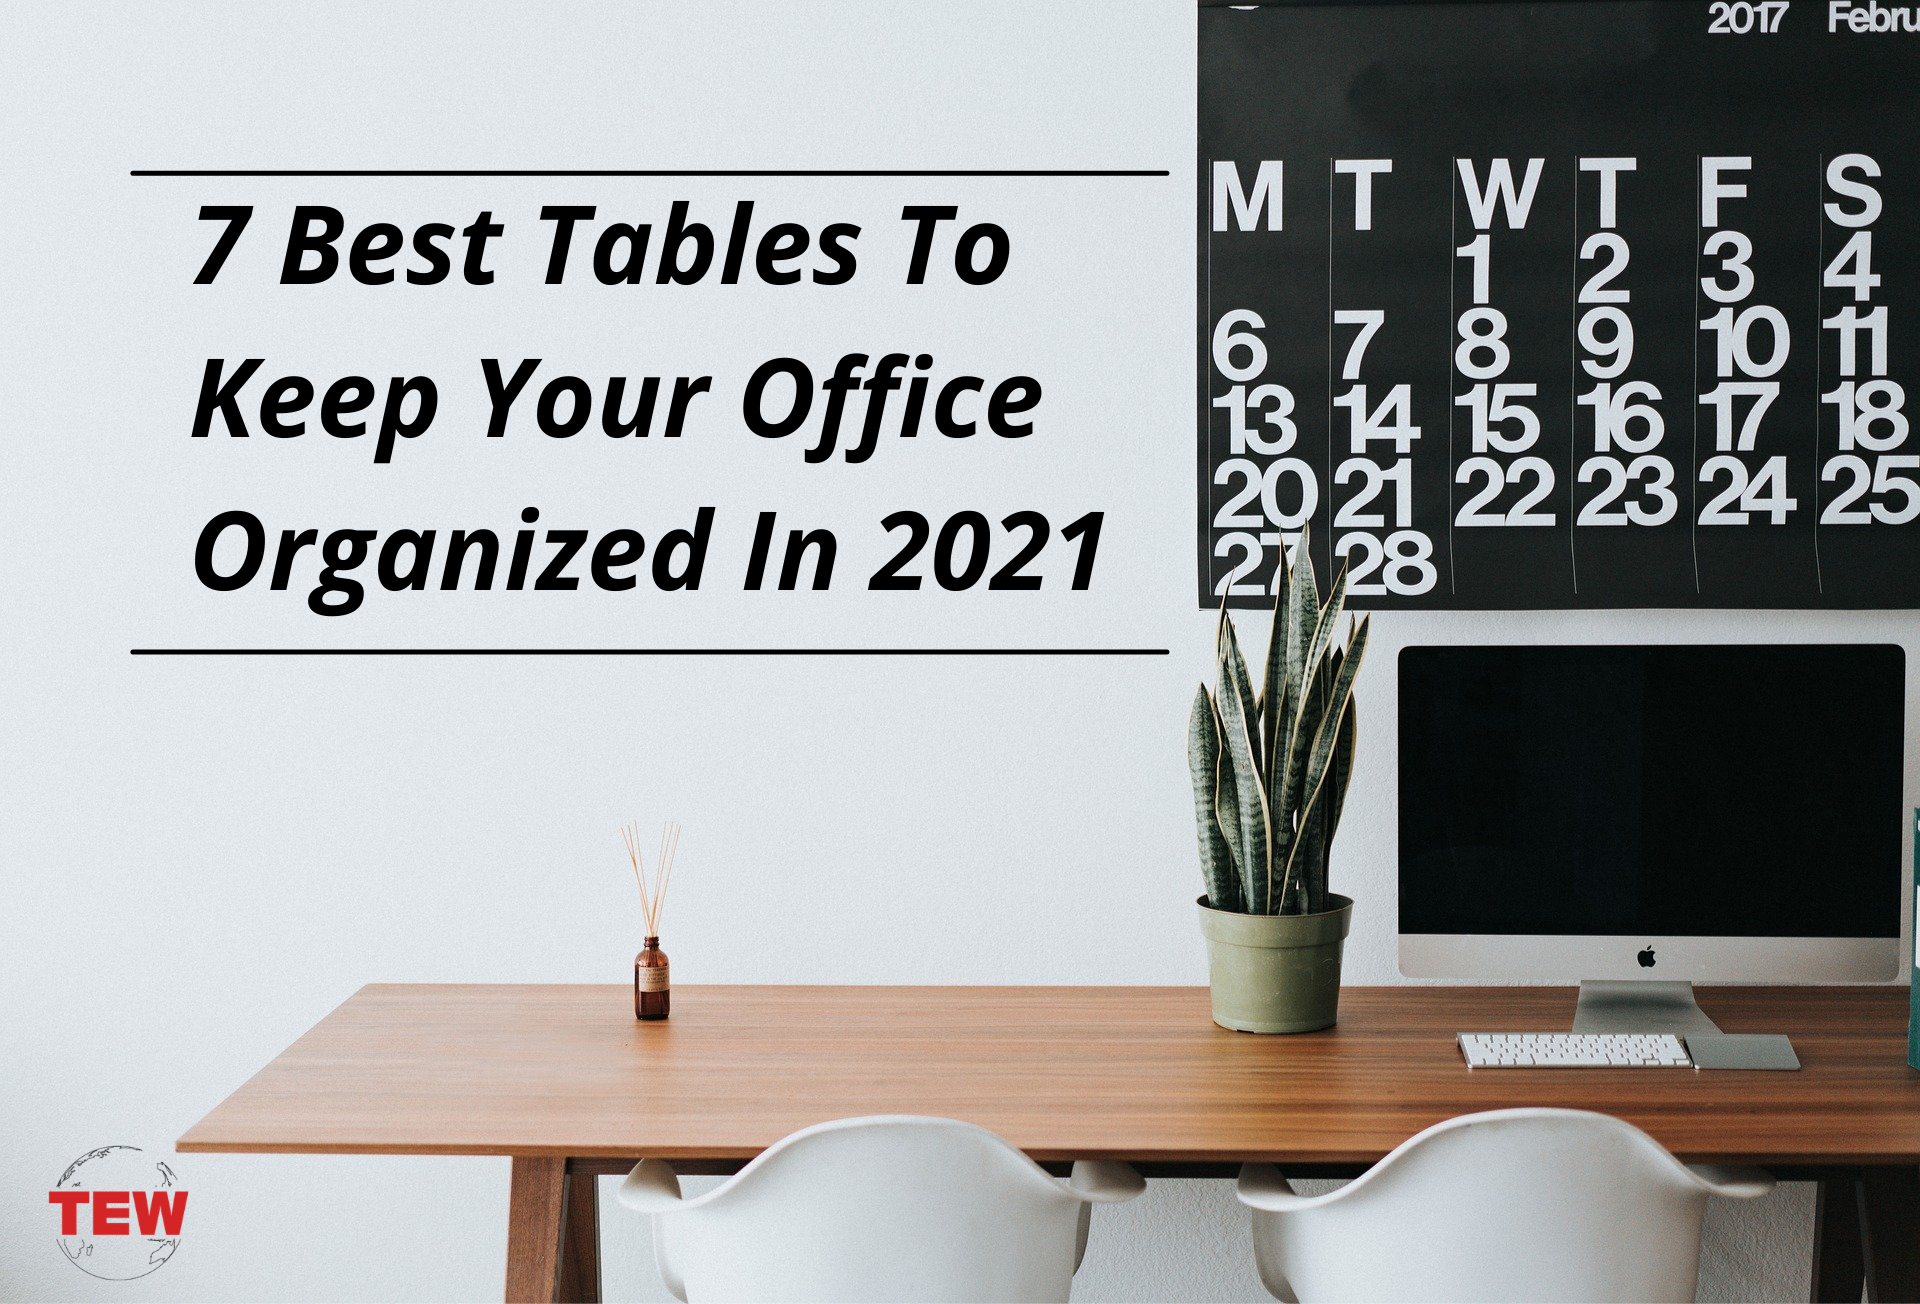 7 Best Tables To Keep Your Office Organized In 2021